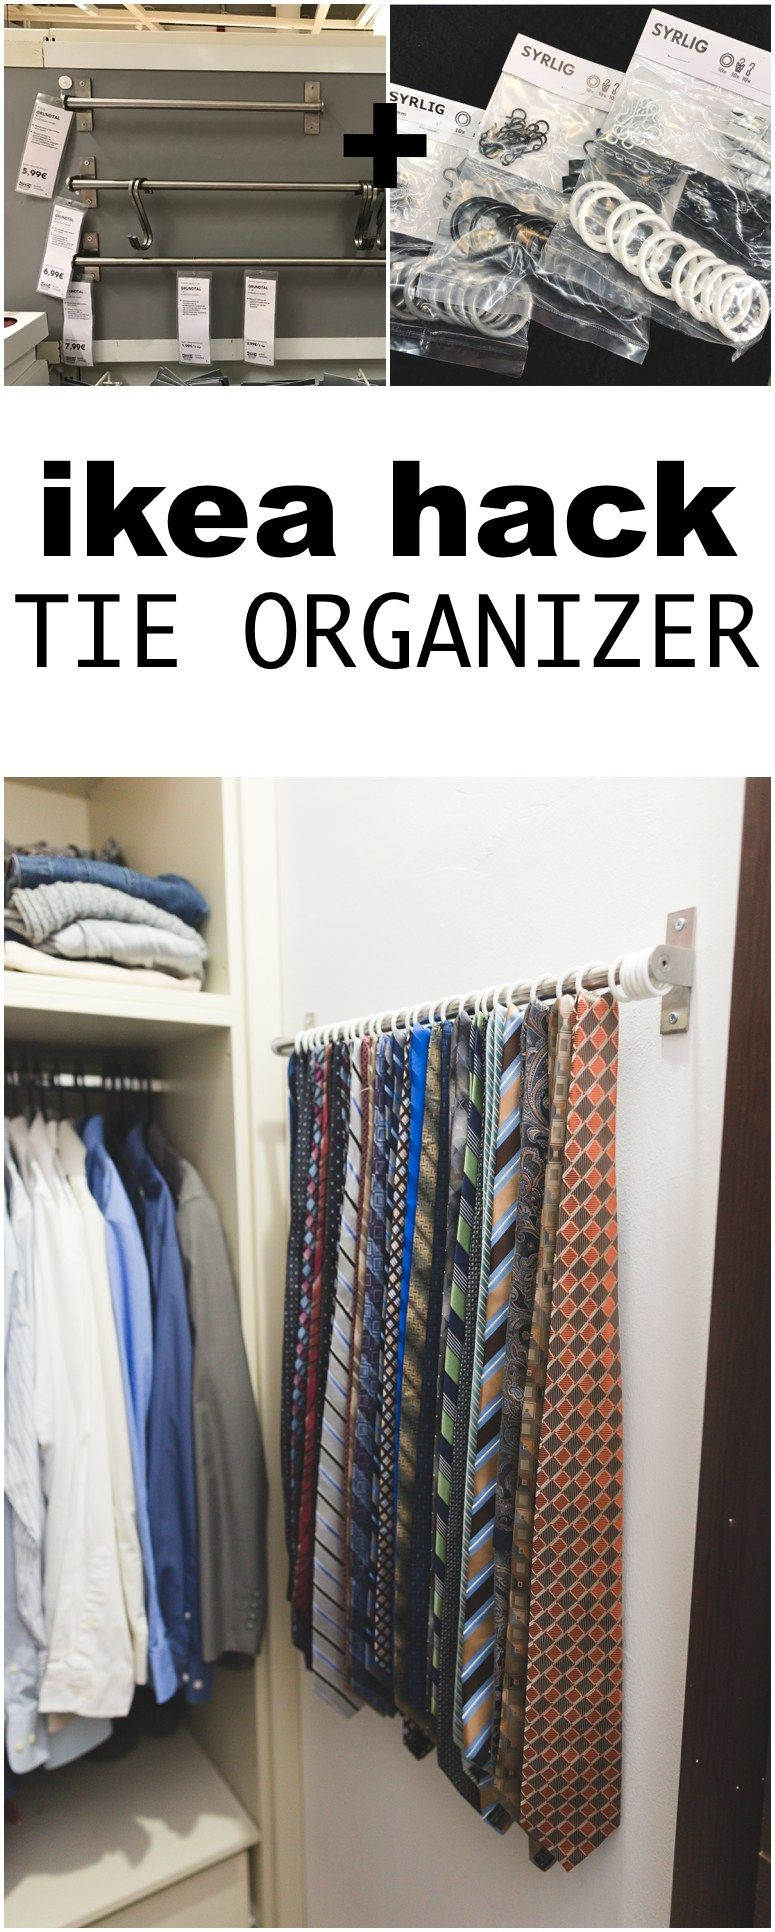 Need A Way To Organize All Those Ties This Ikea Hack Tie Organizer